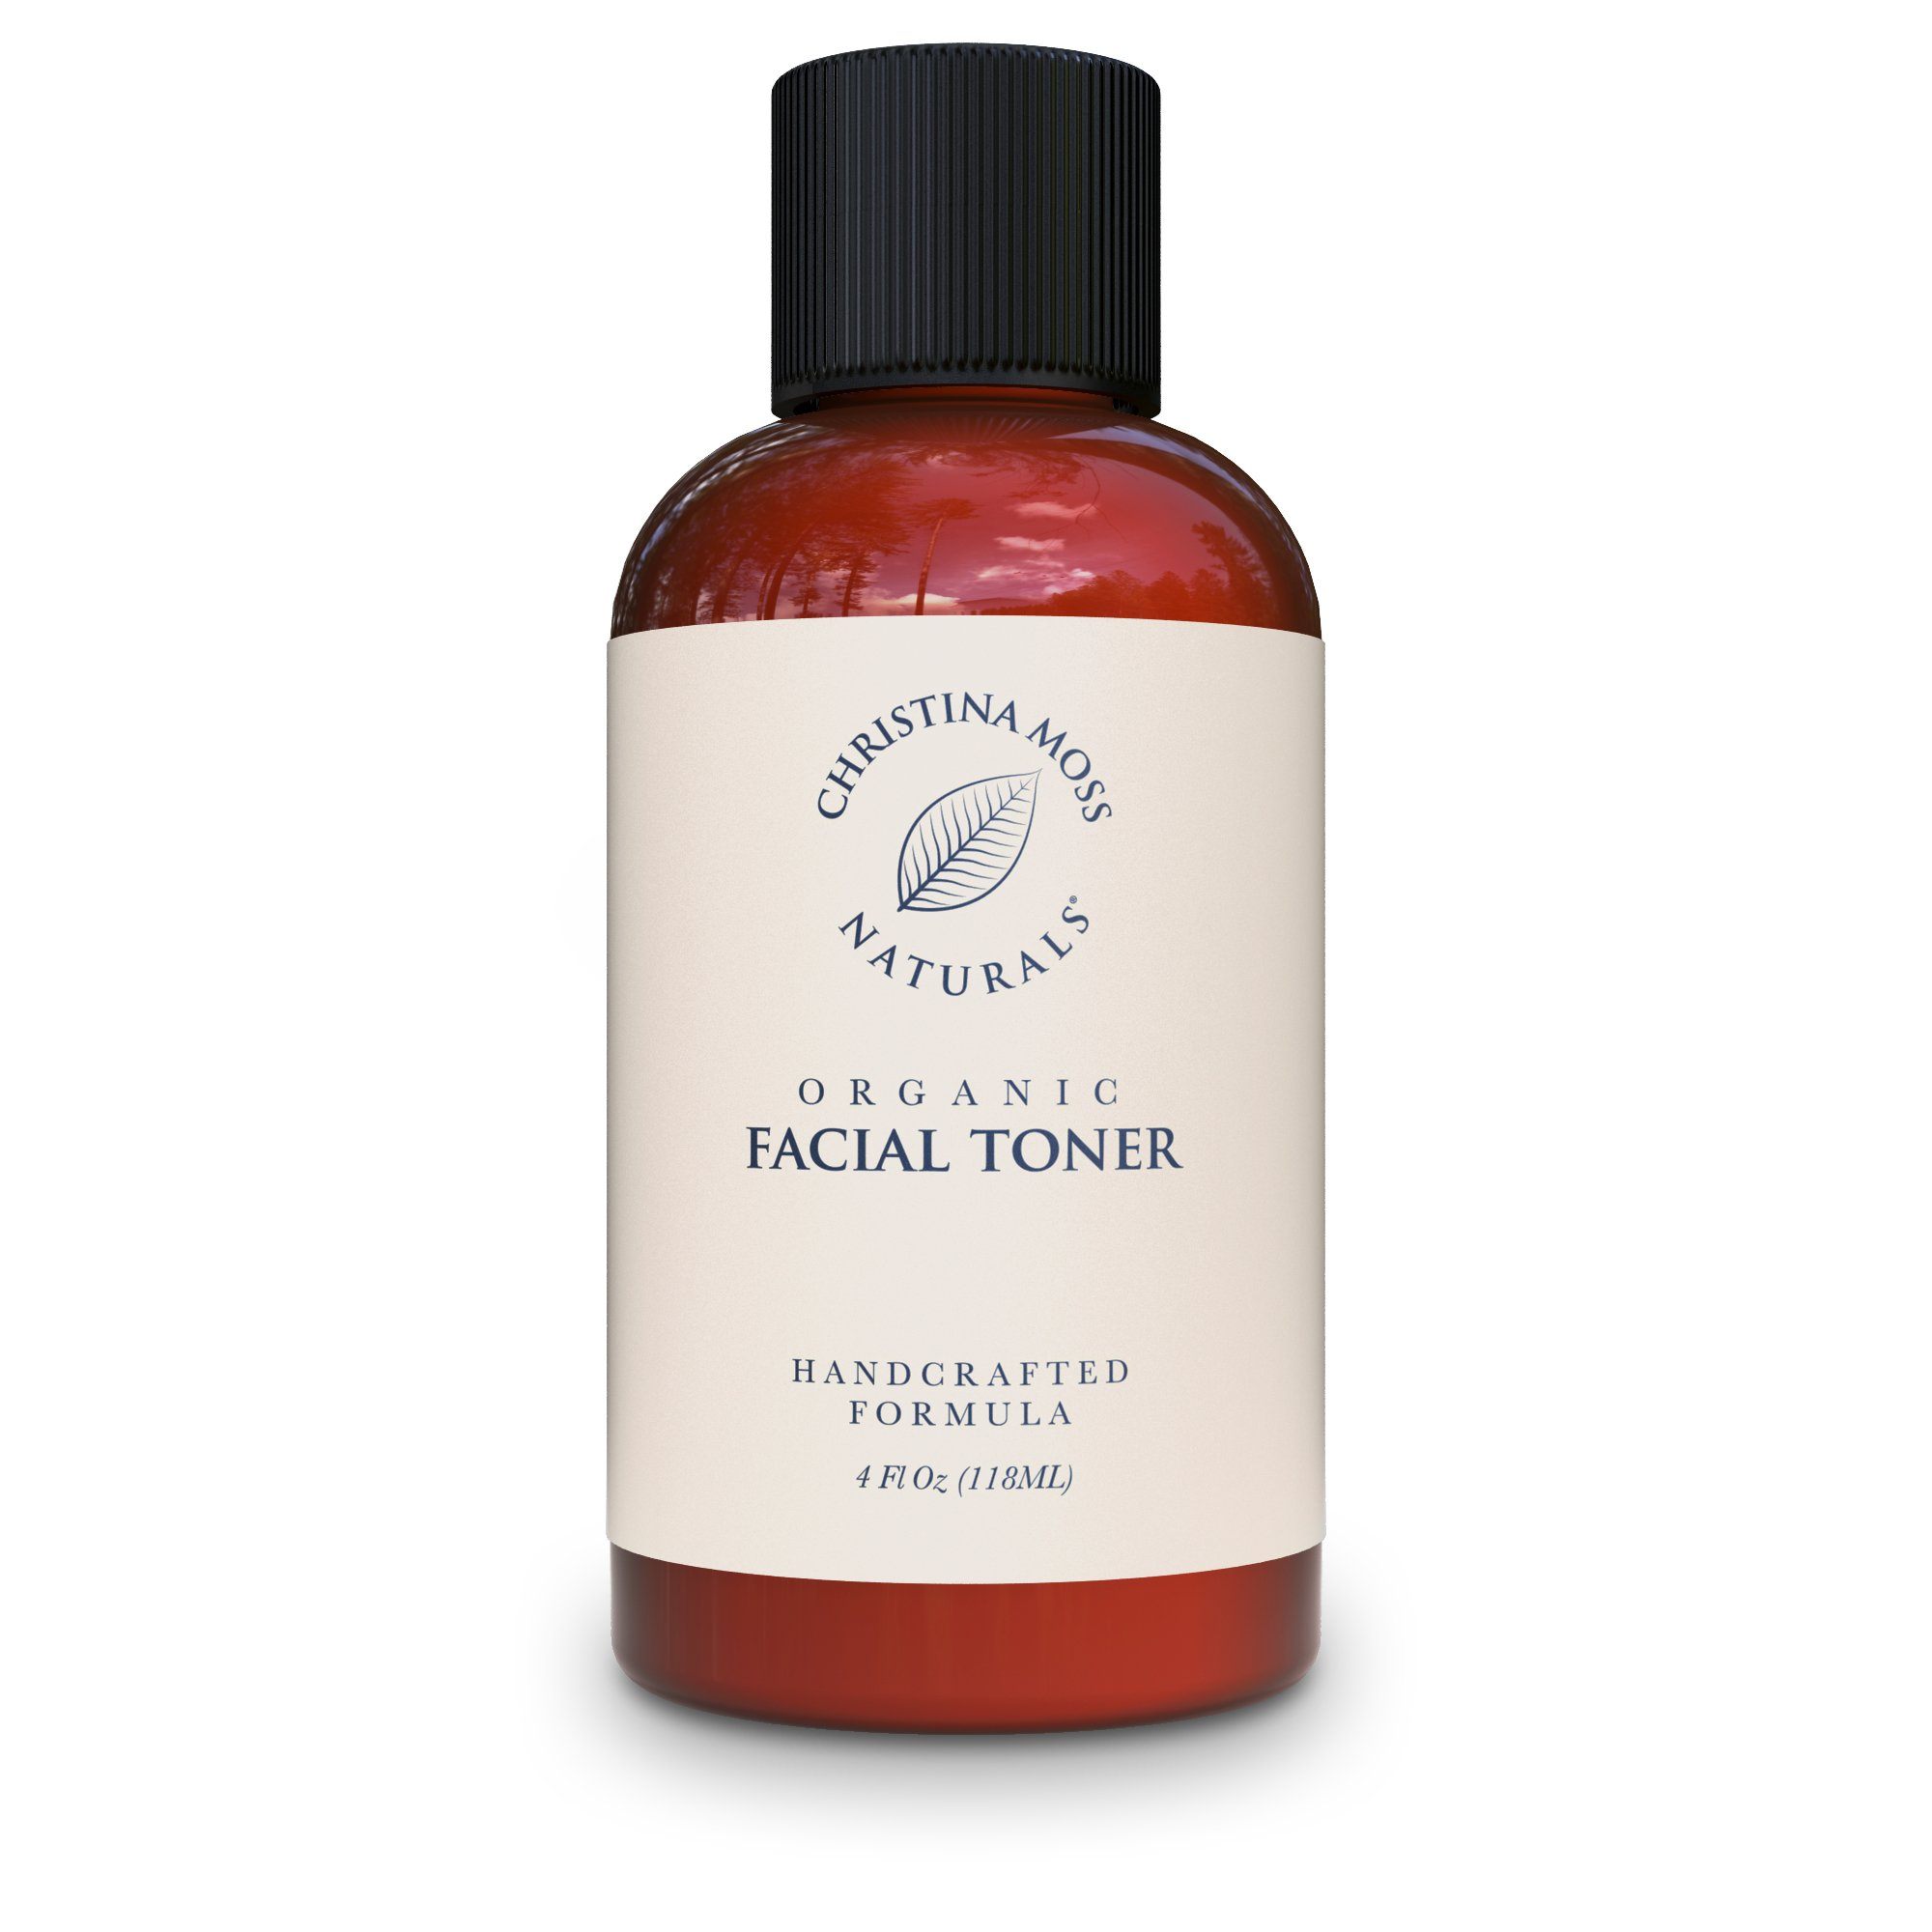 Facial Toner - Face Toner Made With Organic & Natural Ingredients - Skin Clearing, Refines, Tightens Pores, Hydrates, Restores pH. No Harmful Chemicals or GMOs. Christina Moss Naturals 4oz Unscented by Christina Moss Naturals